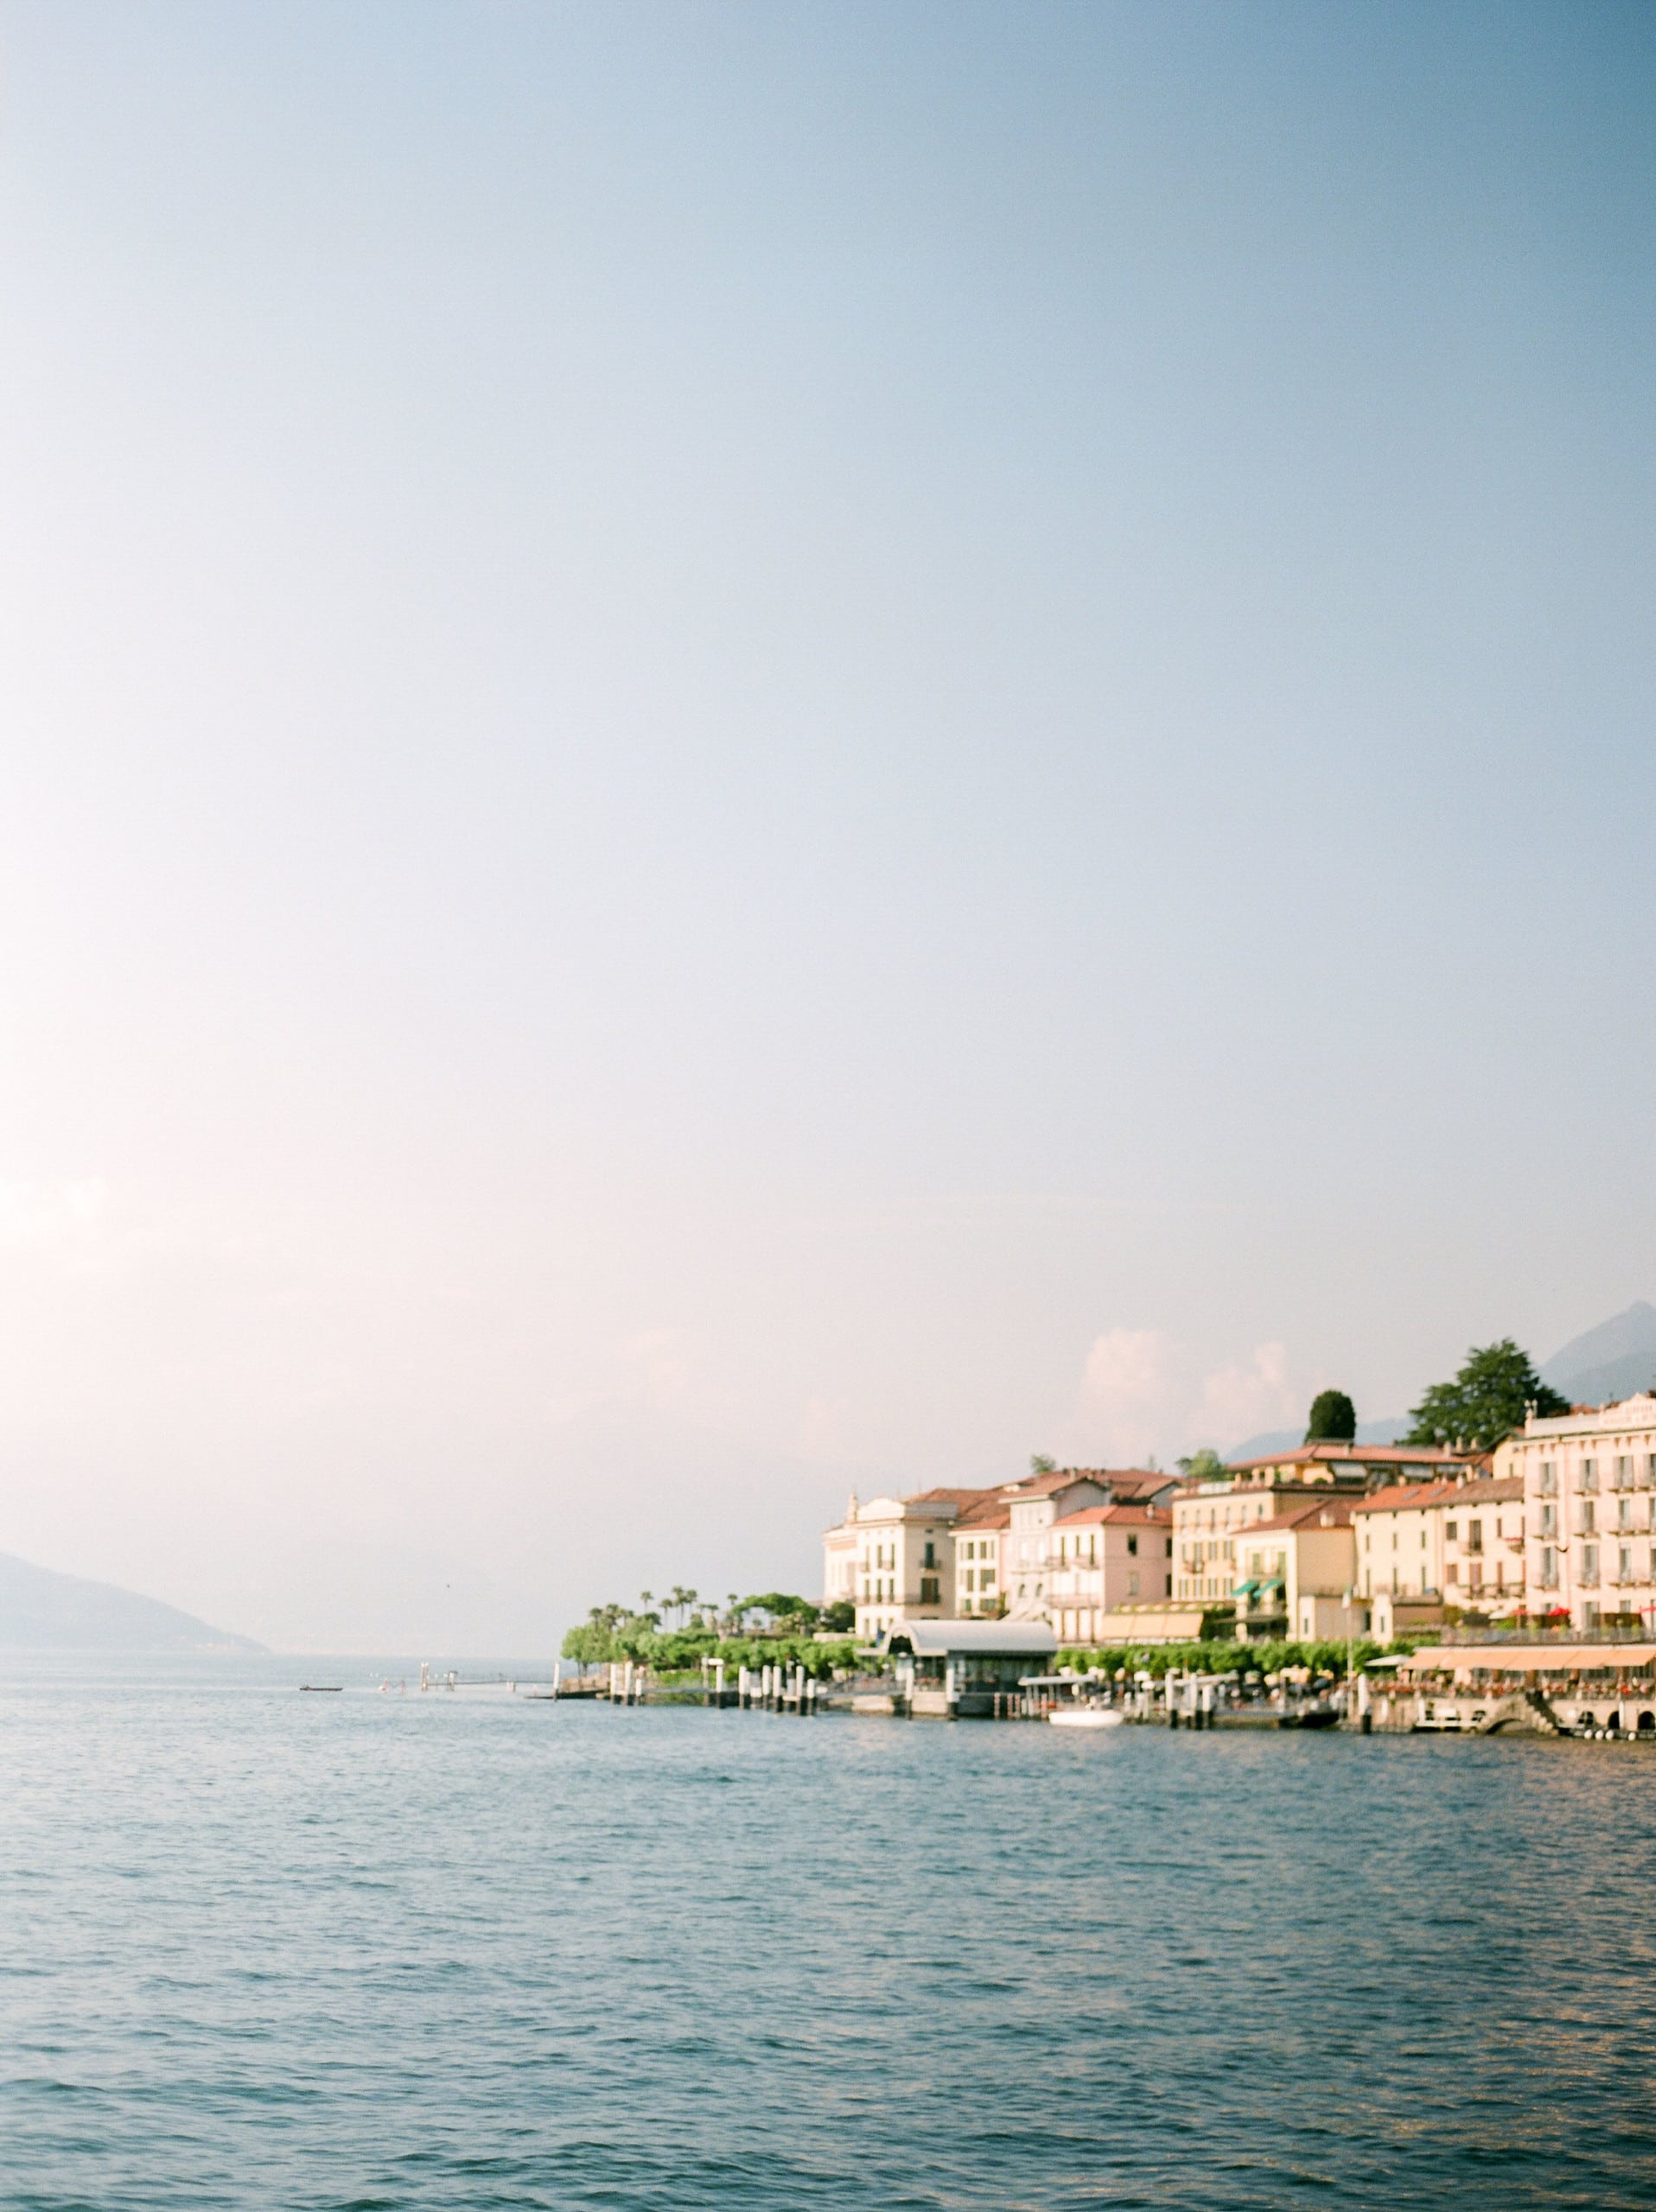 lake como italy mountains bellagio holiday europe water buildings culture